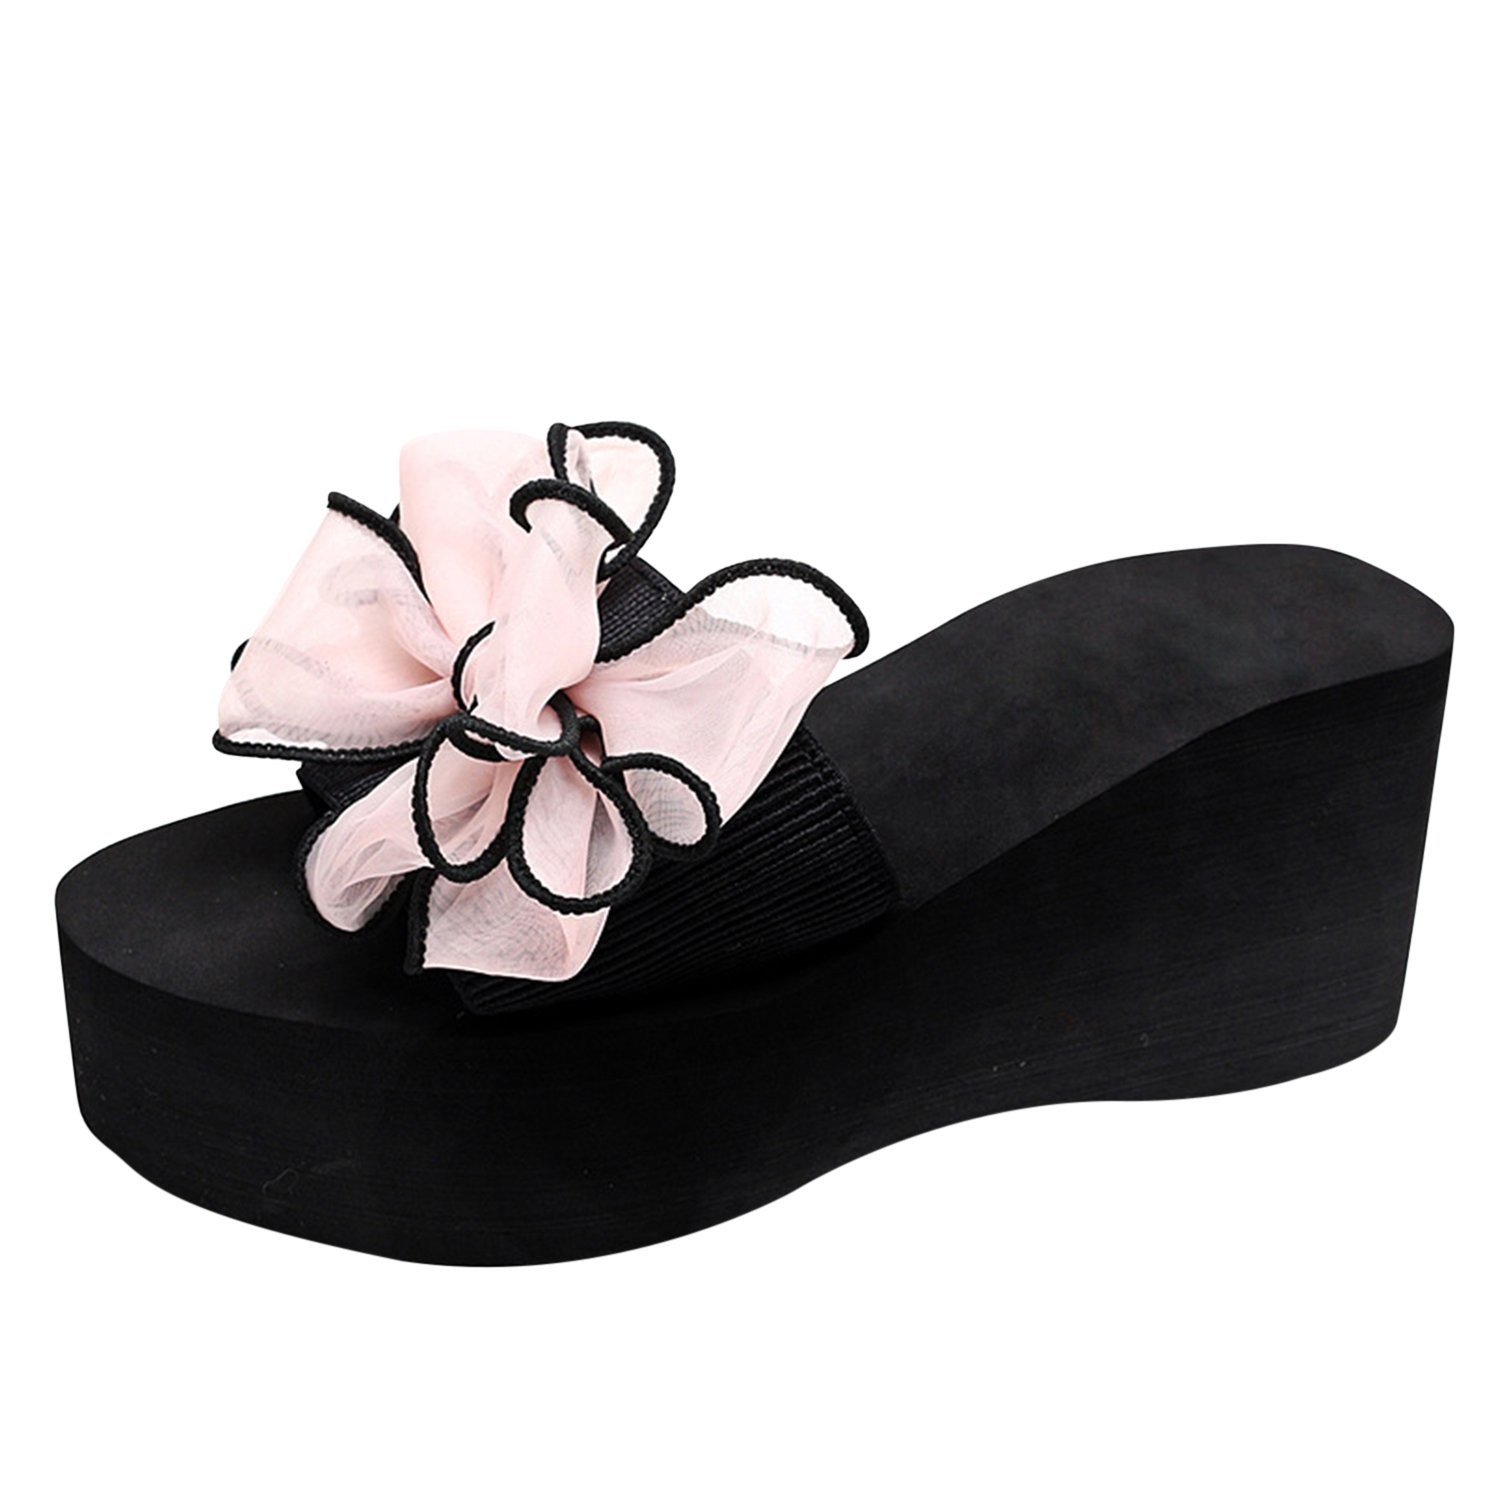 Frestepvie Chaussures Sandales Femme Fille Sandales Slippers Espadrilles Chaussures Chaussons Compensé B07HGZPRZ5 Plat Confort Mode Simple Plage Casual Rose 9ee9298 - conorscully.space